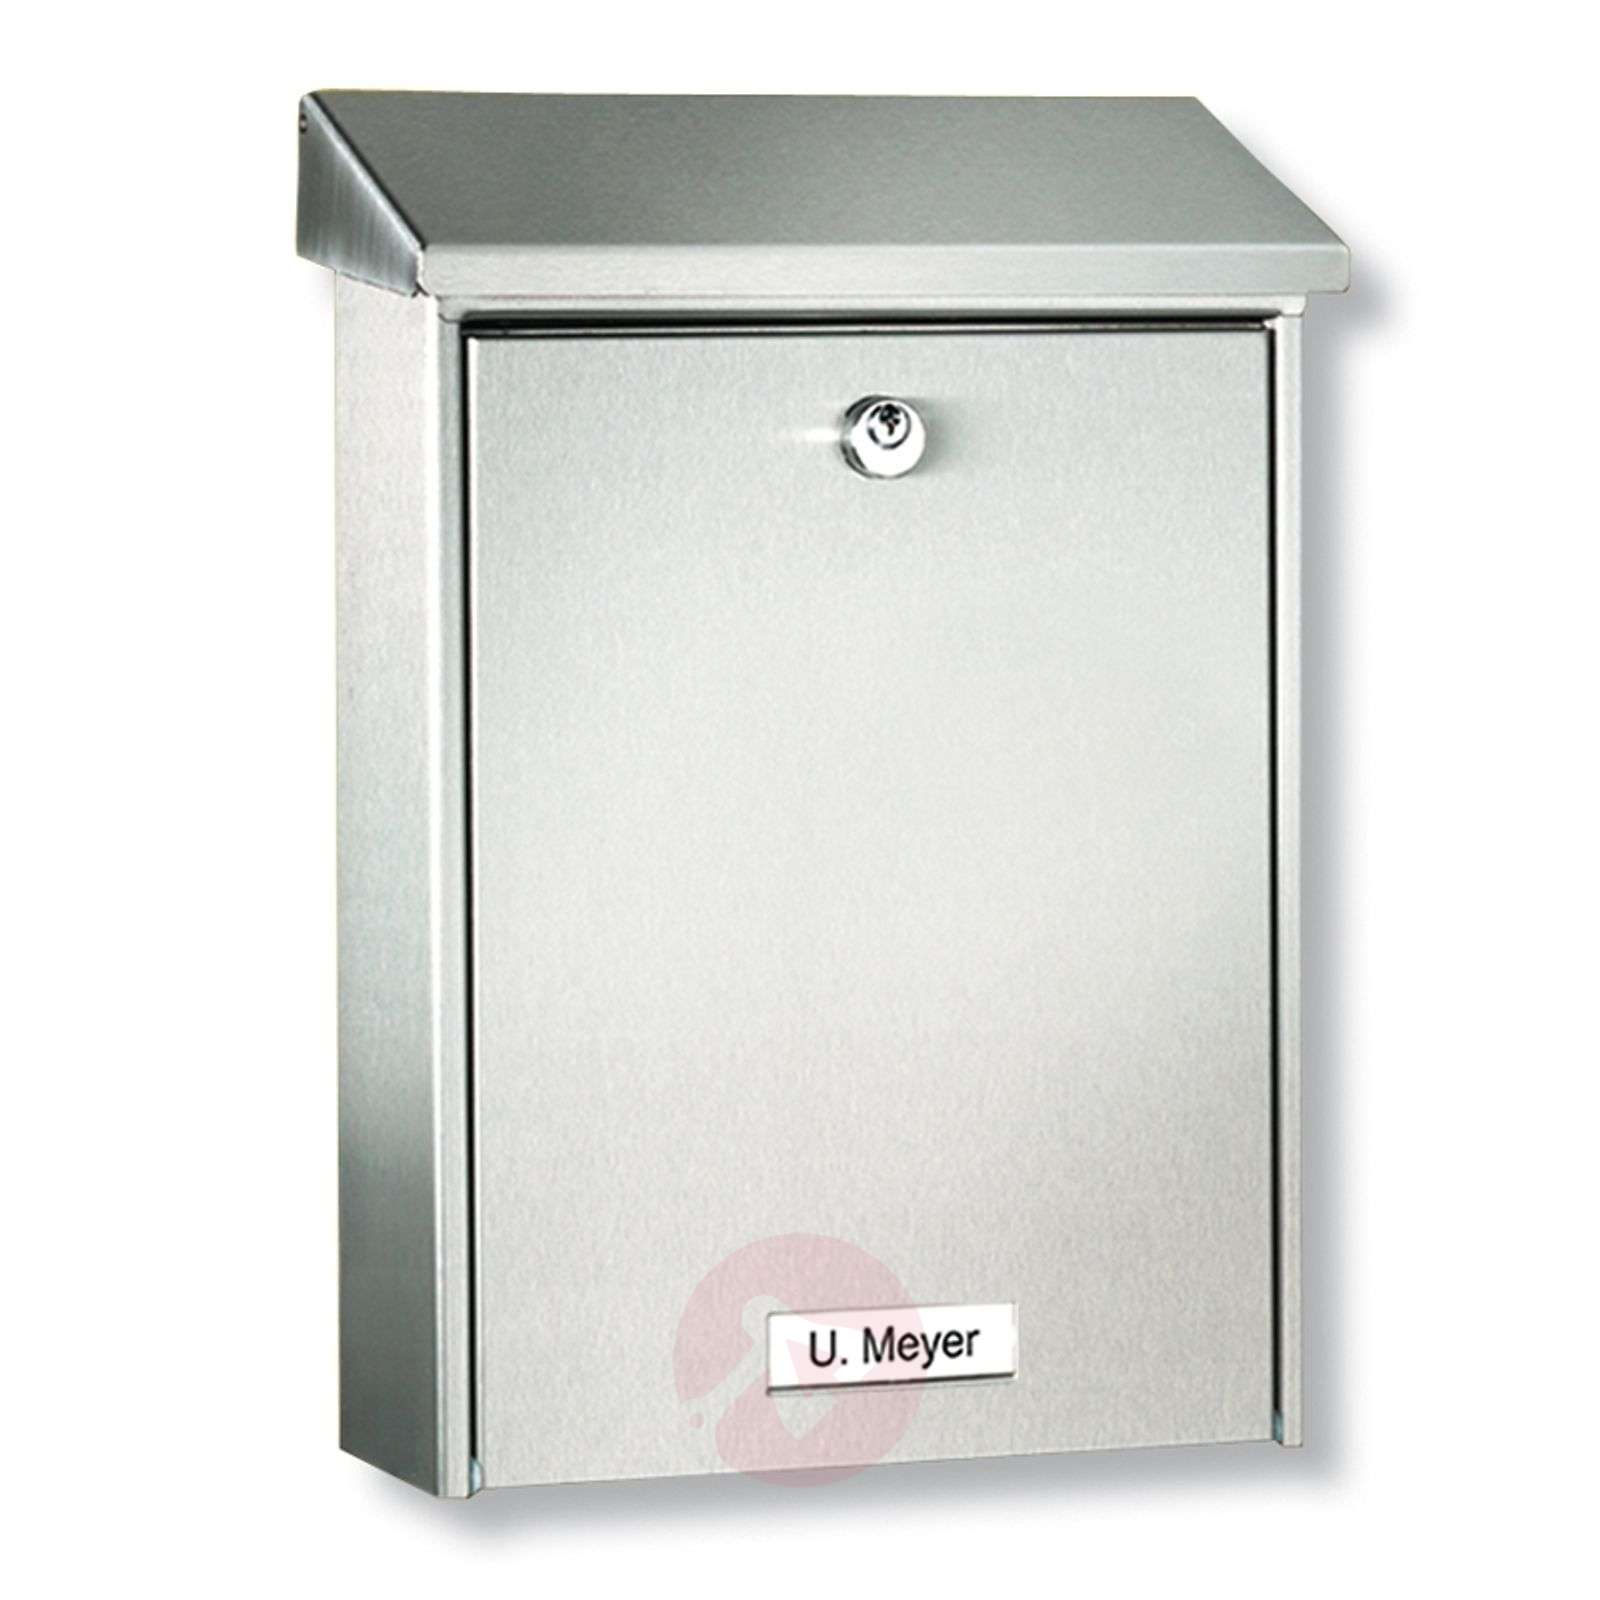 HANNOVER letter box with protective coating-1532037-01